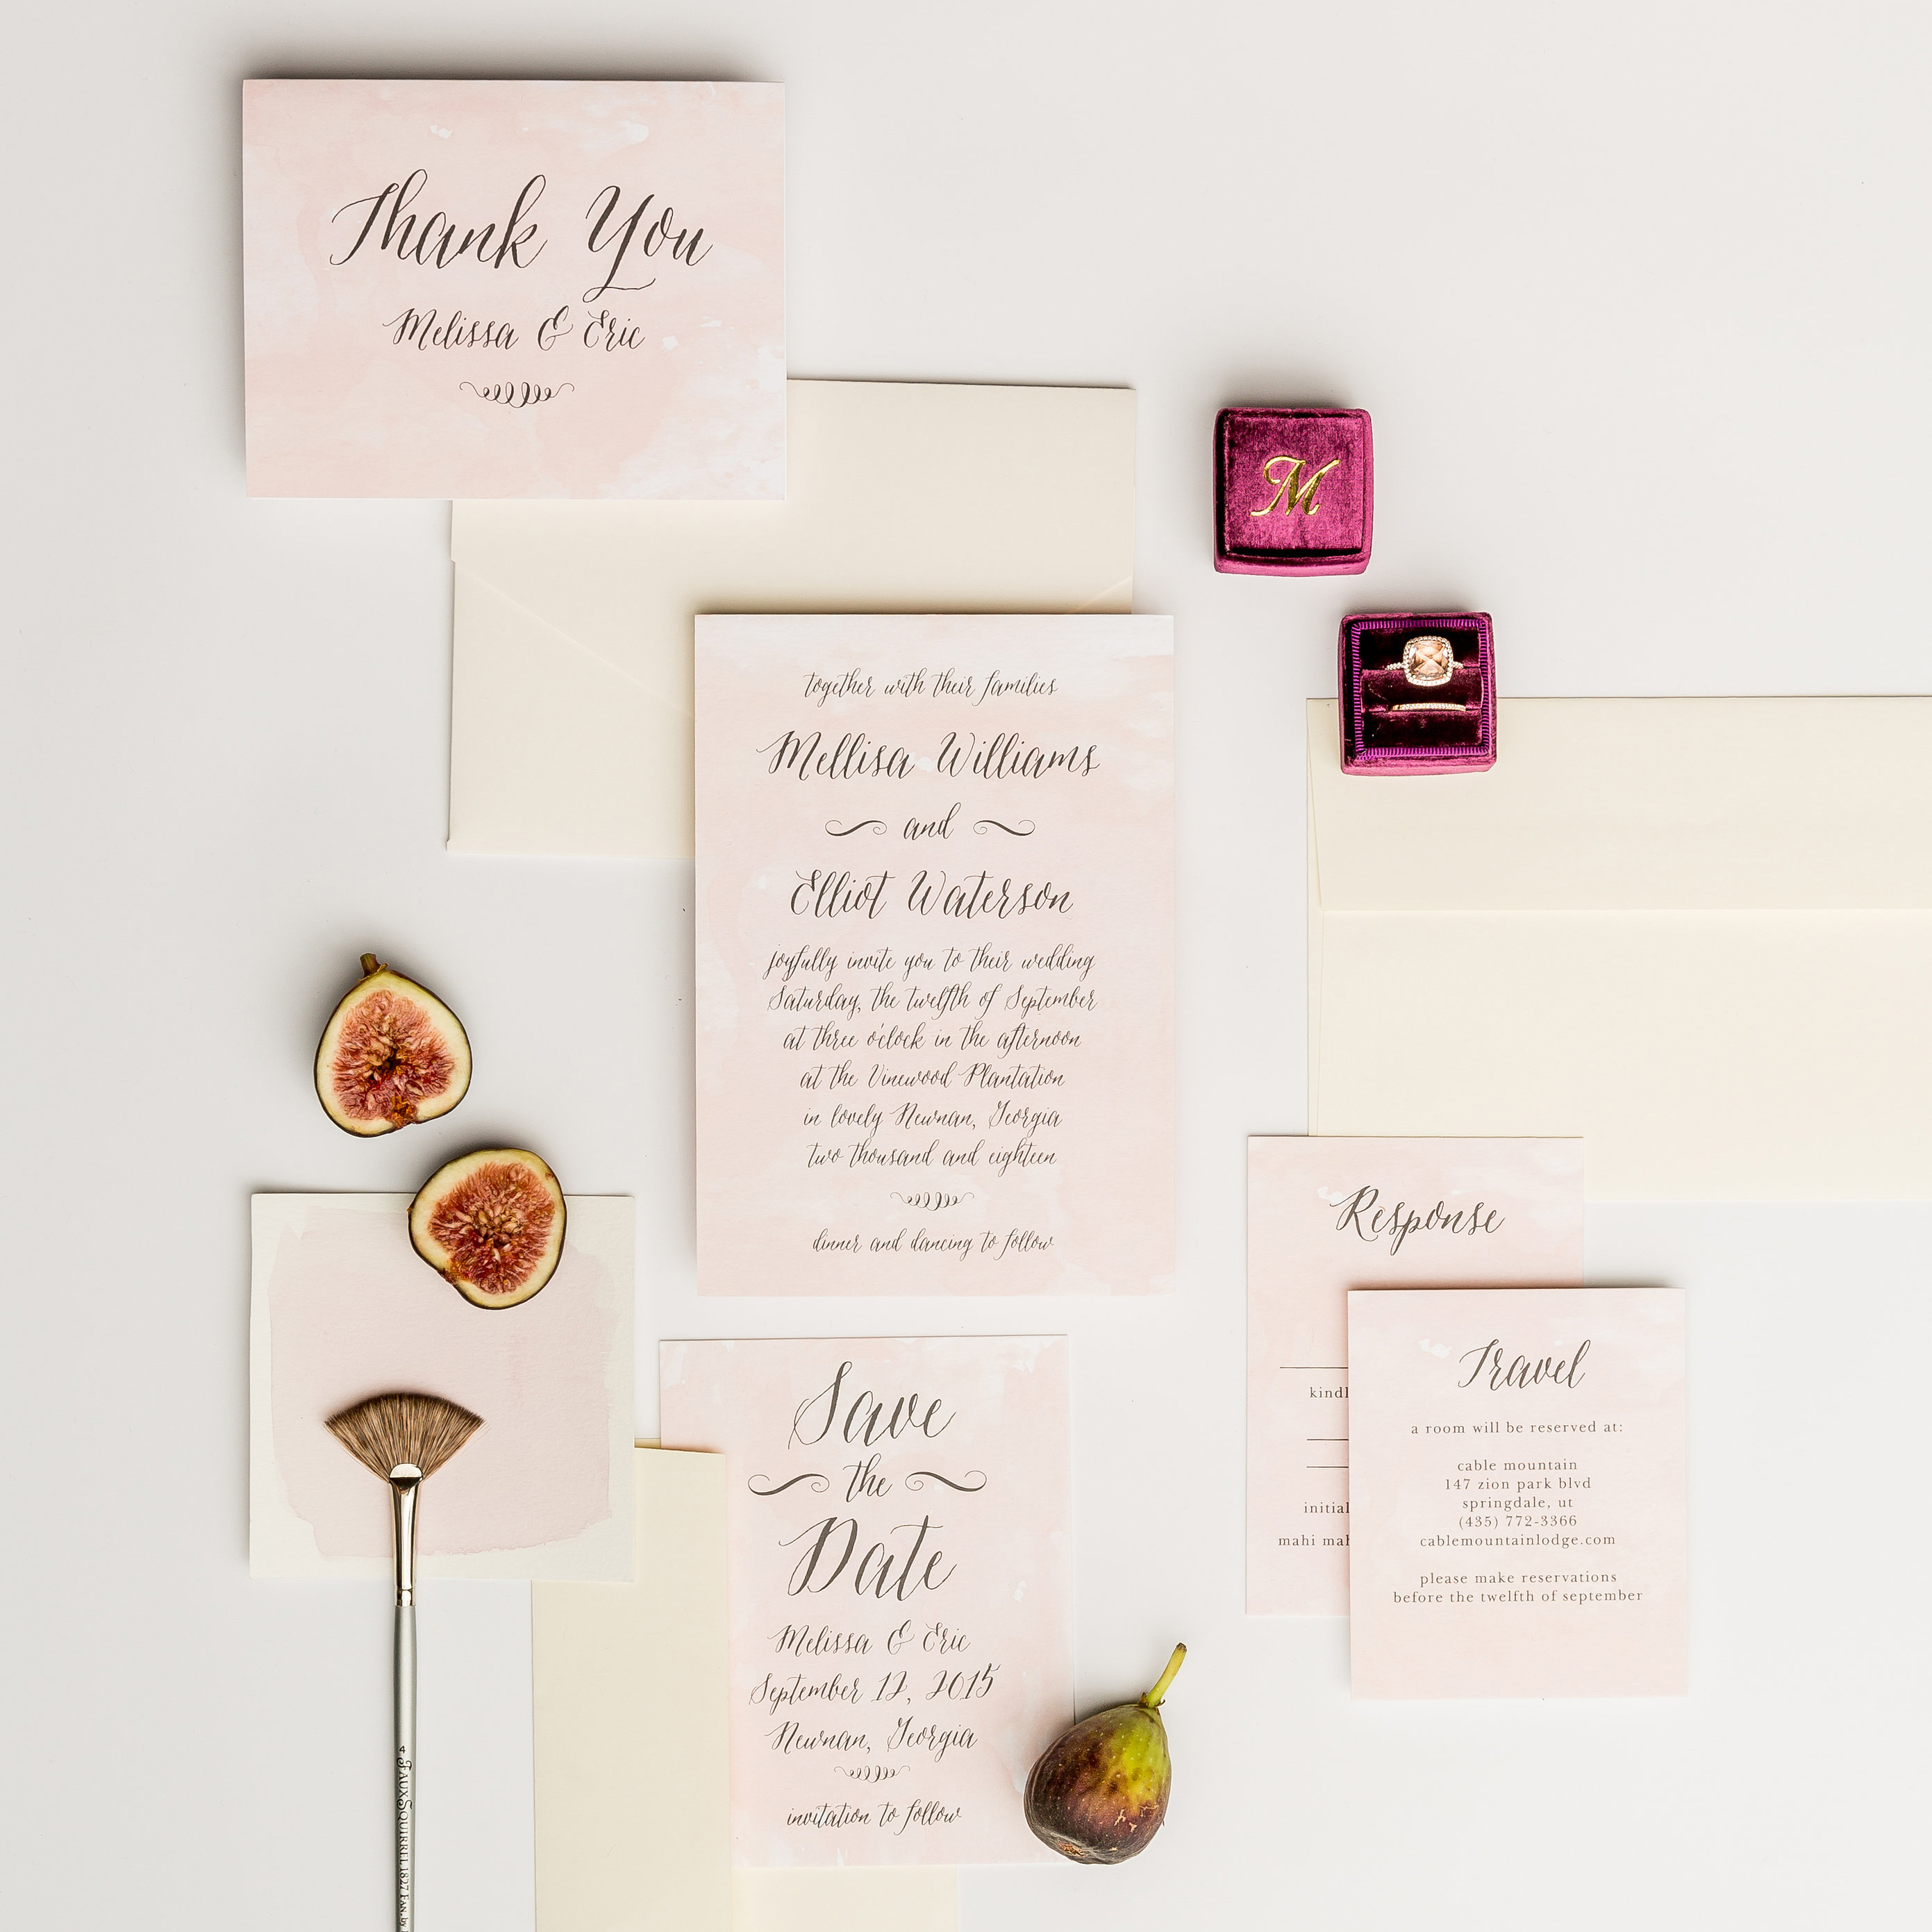 Basic Invite Wedding Stationery Invitation Examples Free Samples Instant Previews Fully Customizable